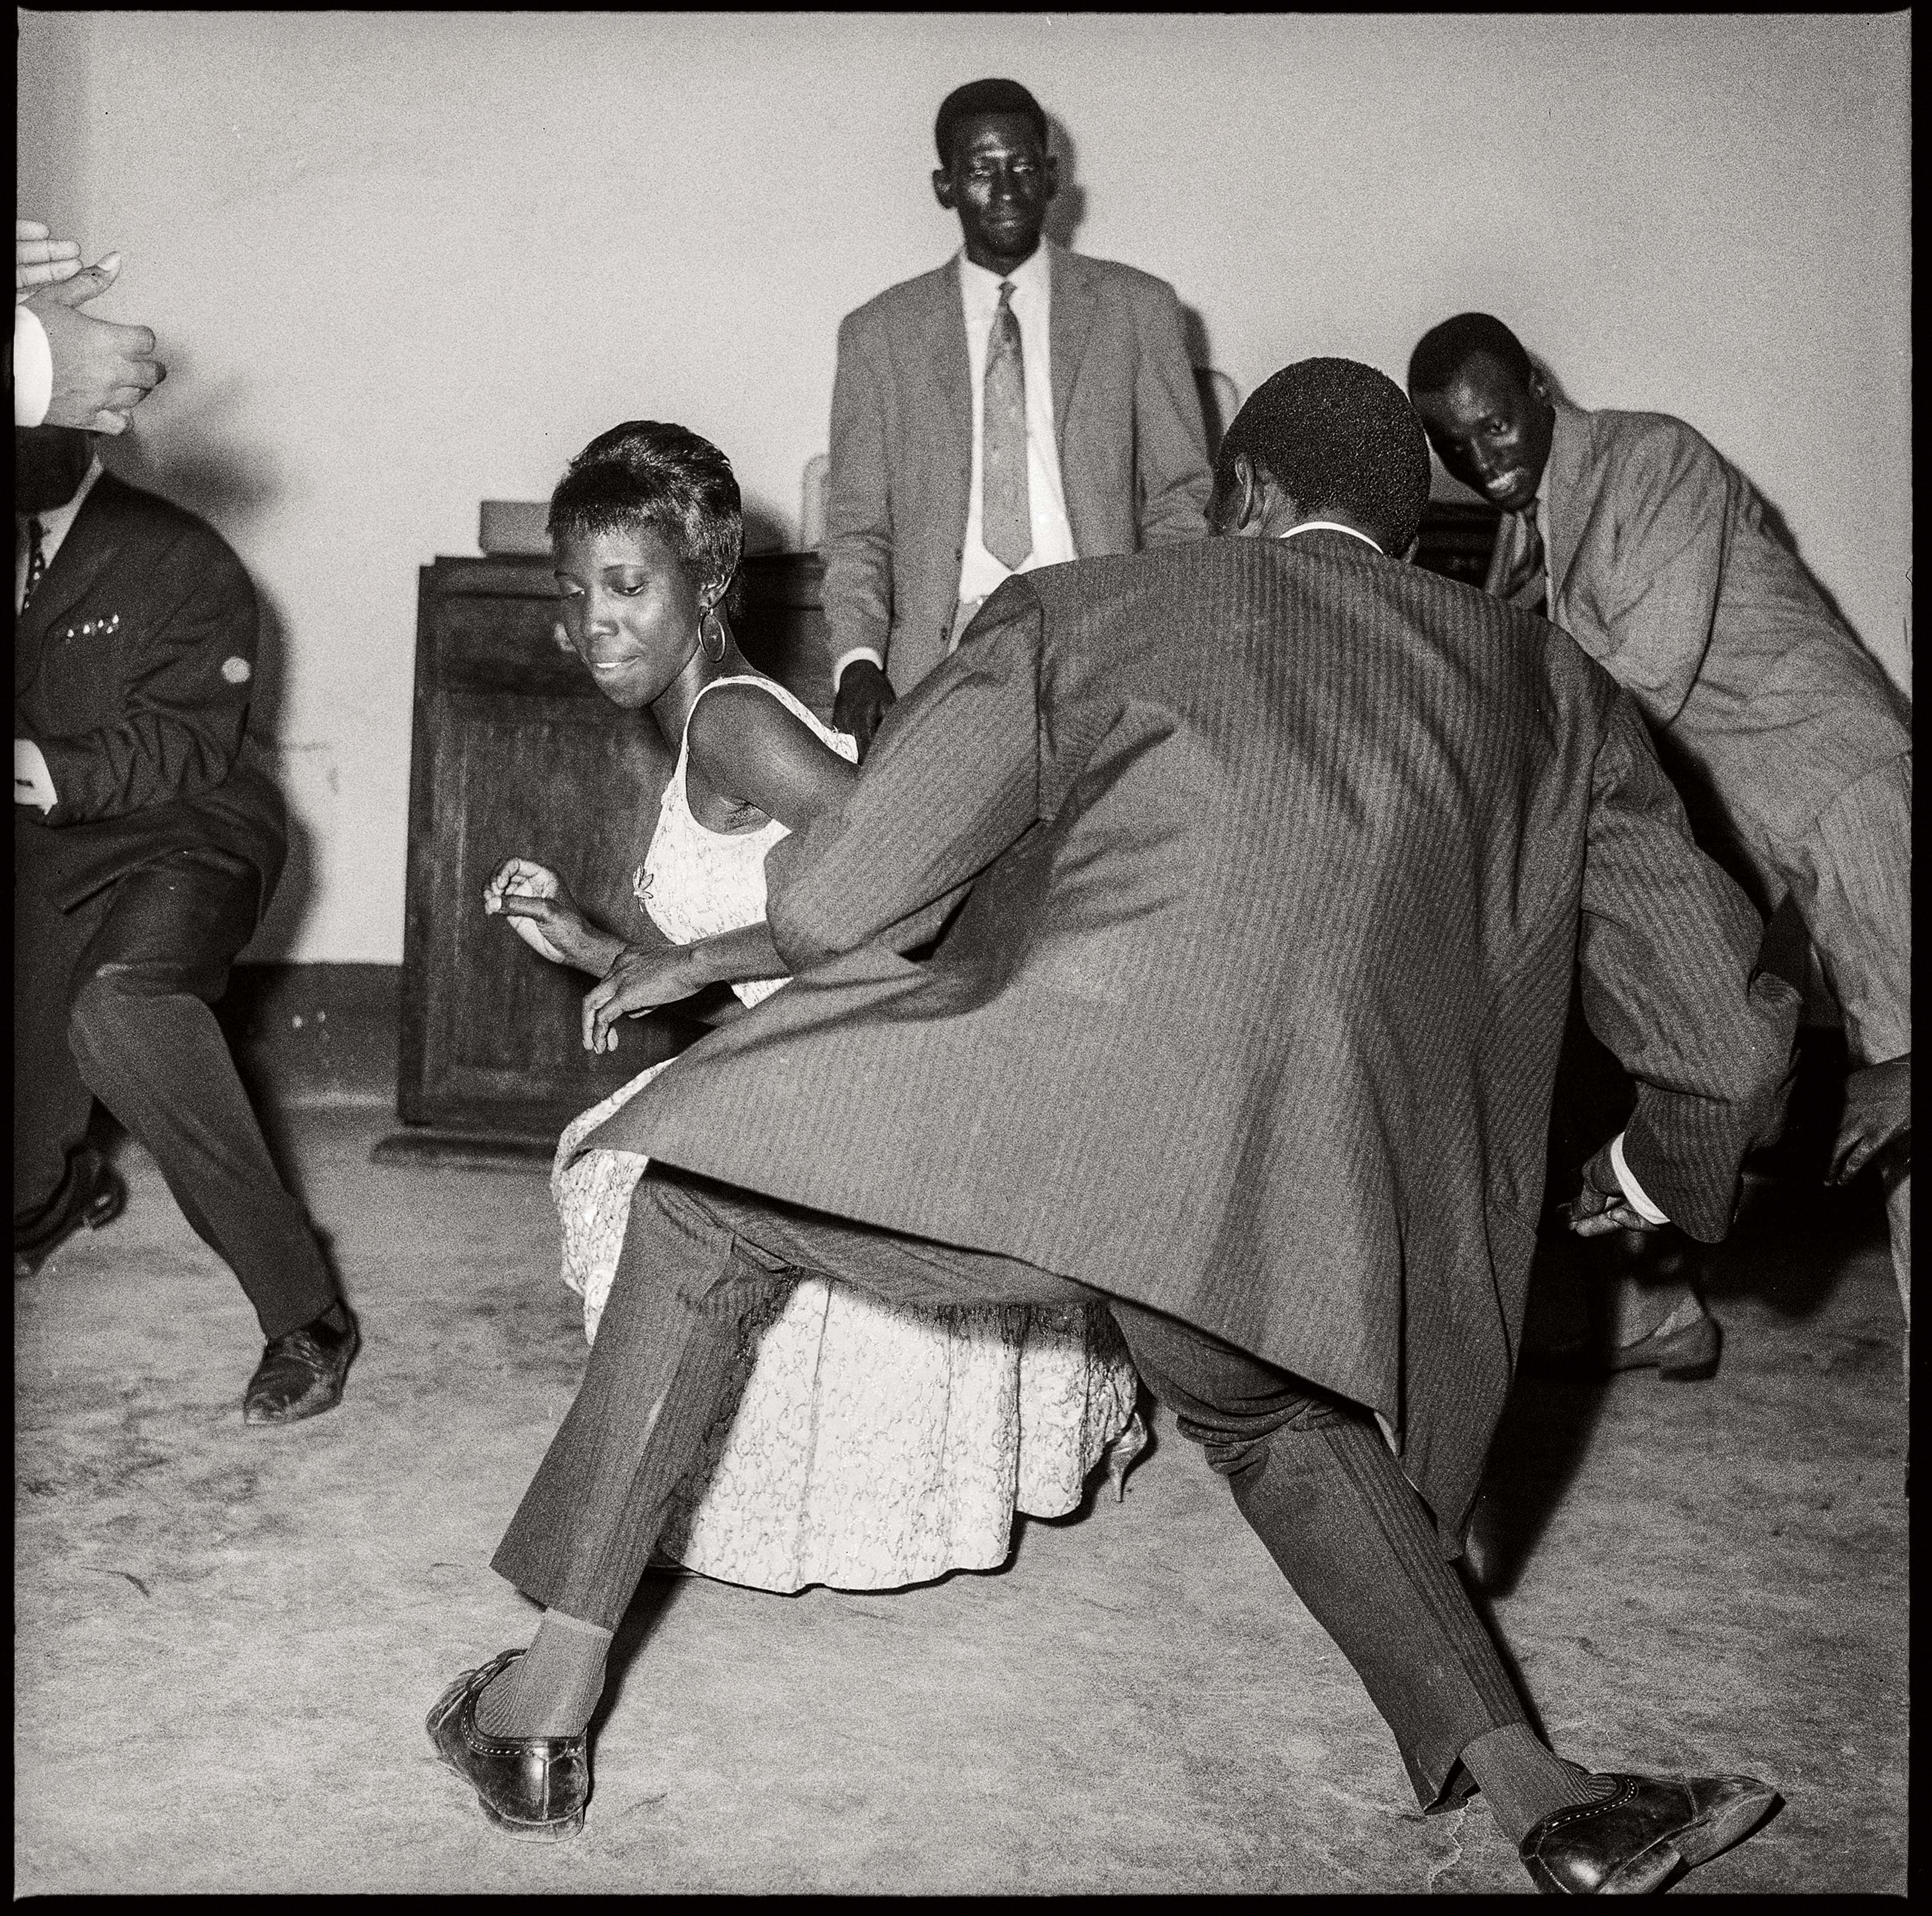 Malick Sidibé Danser le twist, 1965 Tirage gélatino-argentique 100,5 x 99 cm Collection Fondation Cartier pour l'art contemporain, Paris © Malick Sidibé